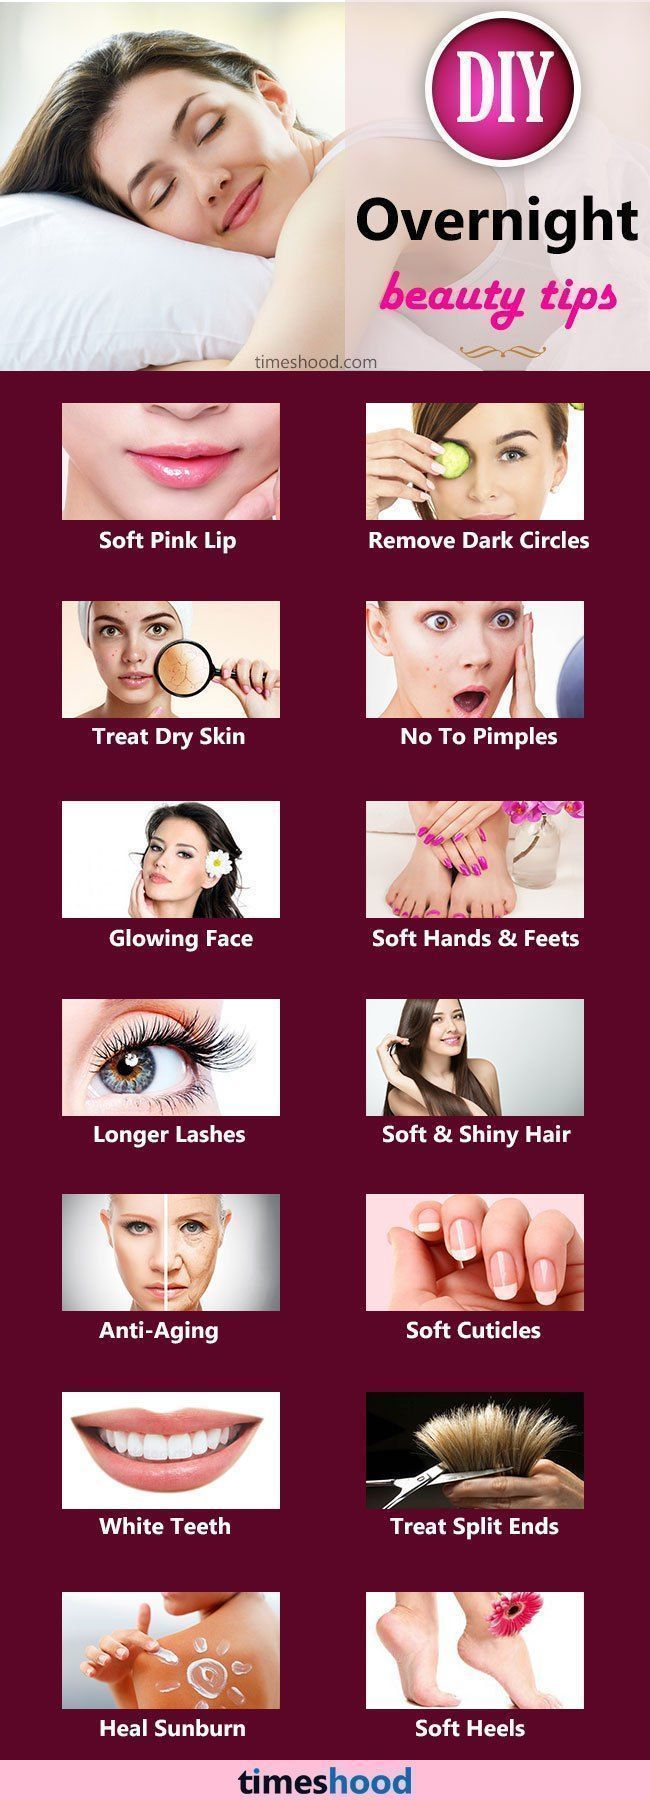 Overnight beauty tips: Beauty tips for skin, hair, Anti Aging Tips, beauty tips for women, home remedies for skin care, Tips to reduce dark circle and dark stop overnight. #antiagingremedies #skincaretips